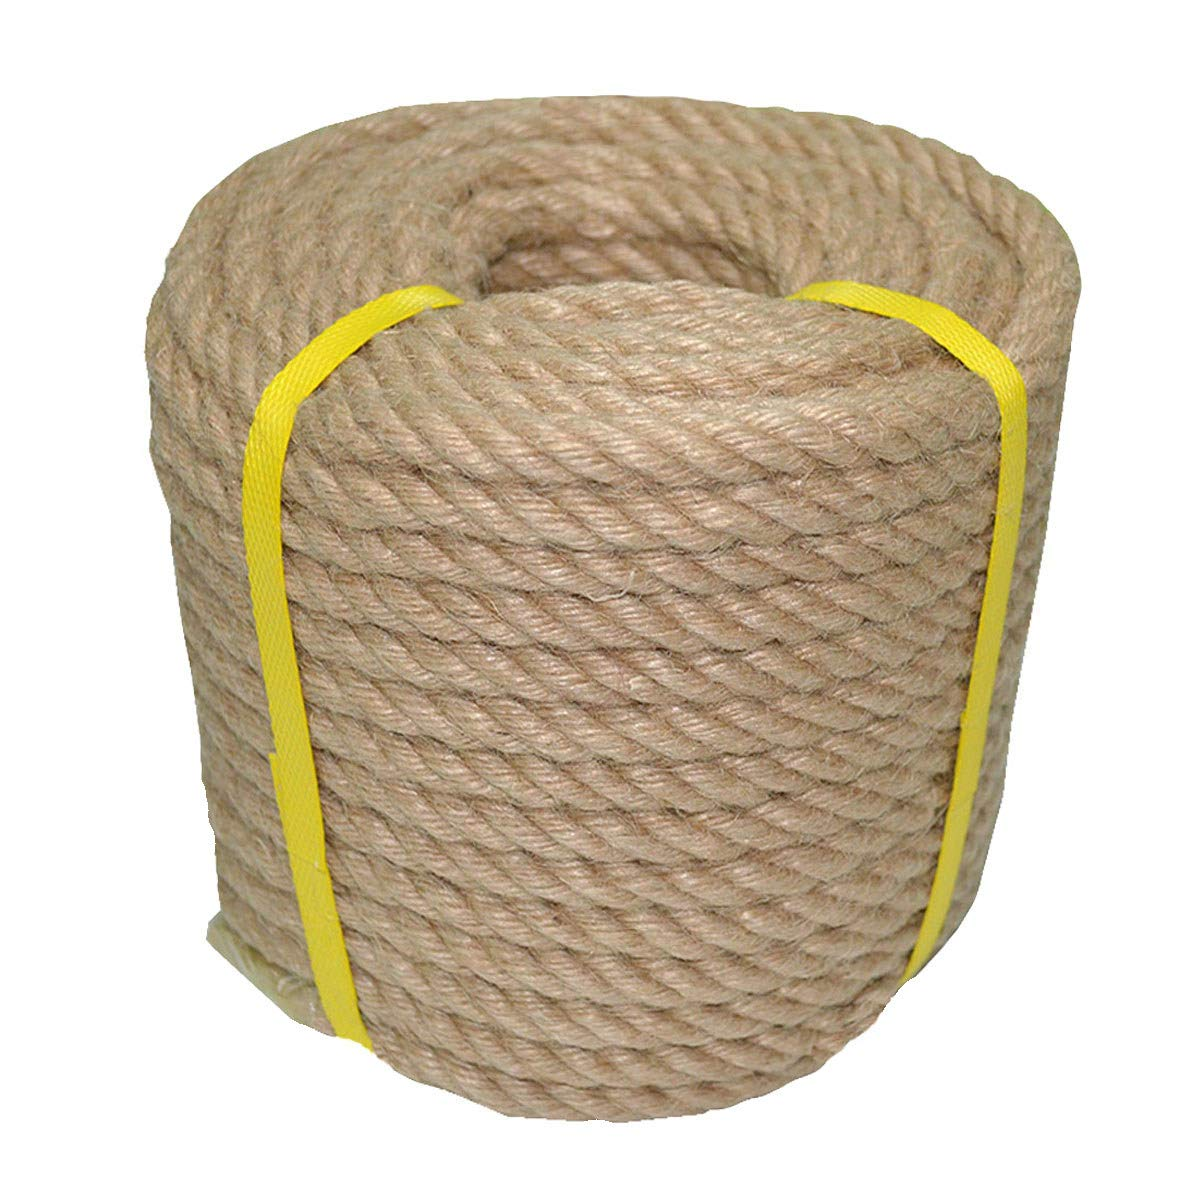 100% Natural Jute Rope Hemp Rope 100 Feet 1/2 Inch Strong Jute Twine for DIY Crafts Gardening Hammock Home Decorating by YuzeNet